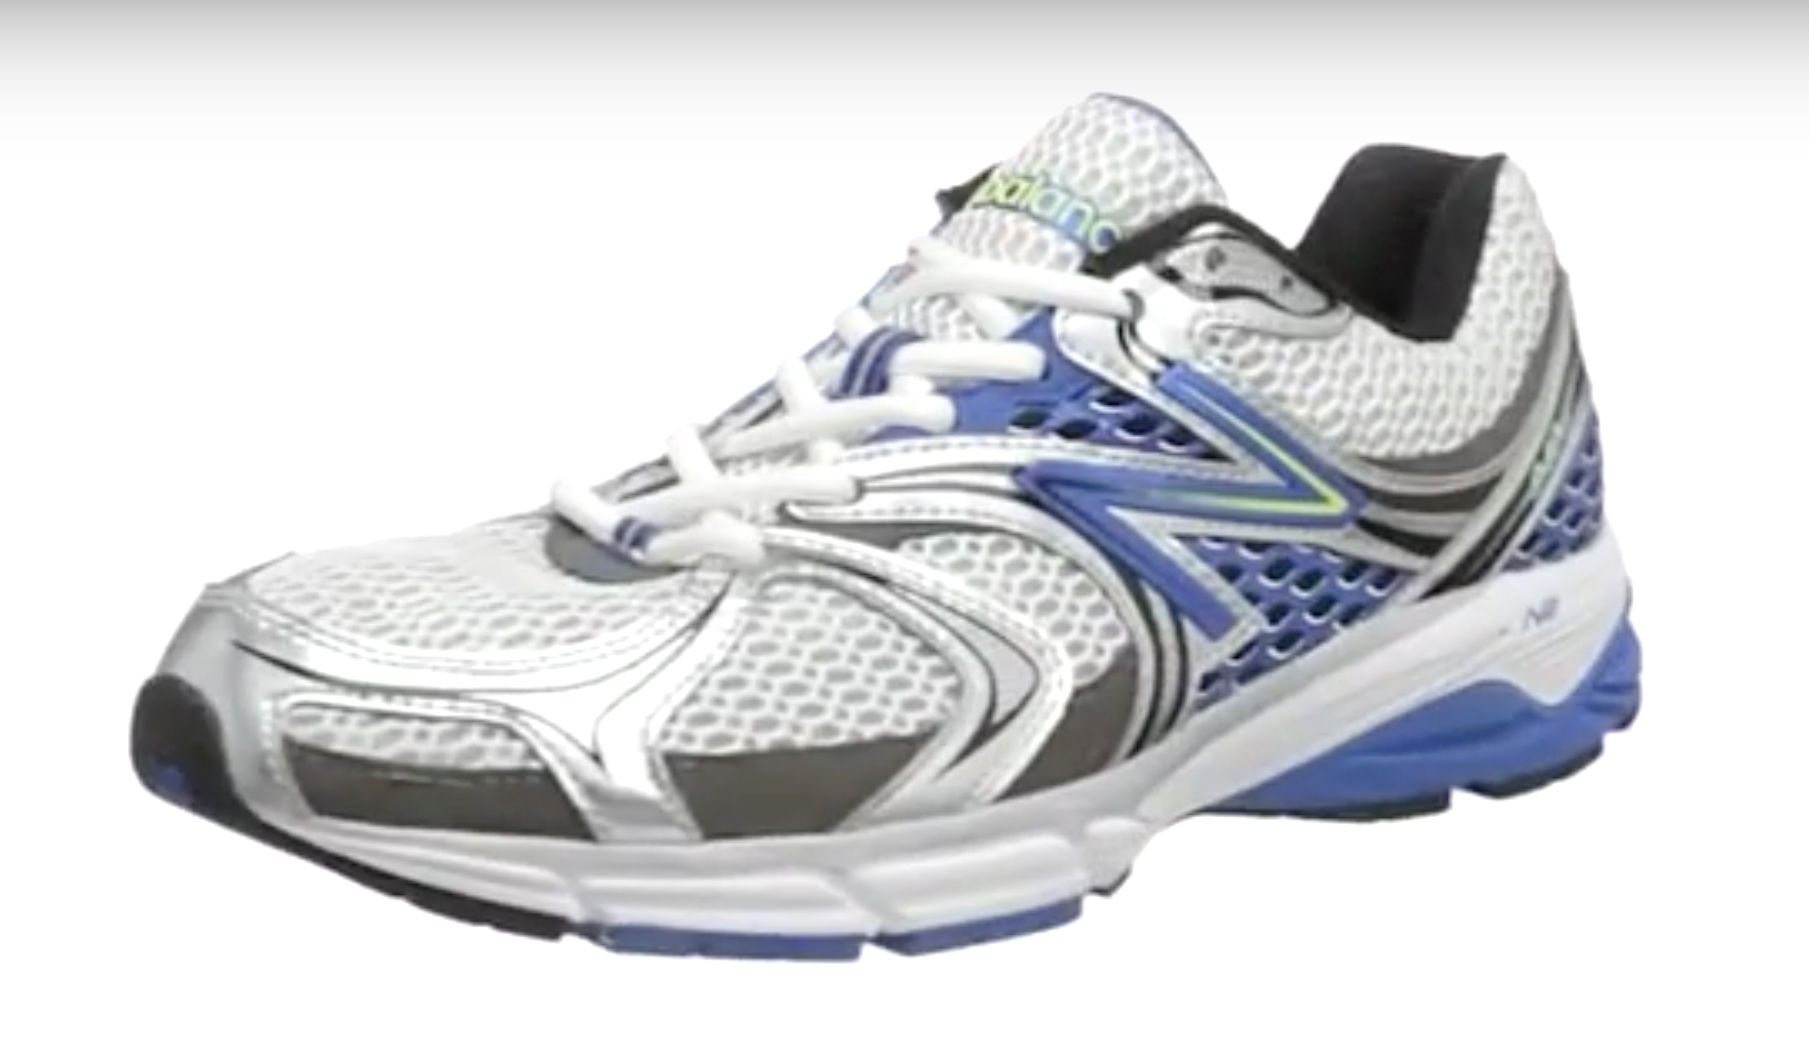 Best Running Shoes For Plantar Fasciitis In India